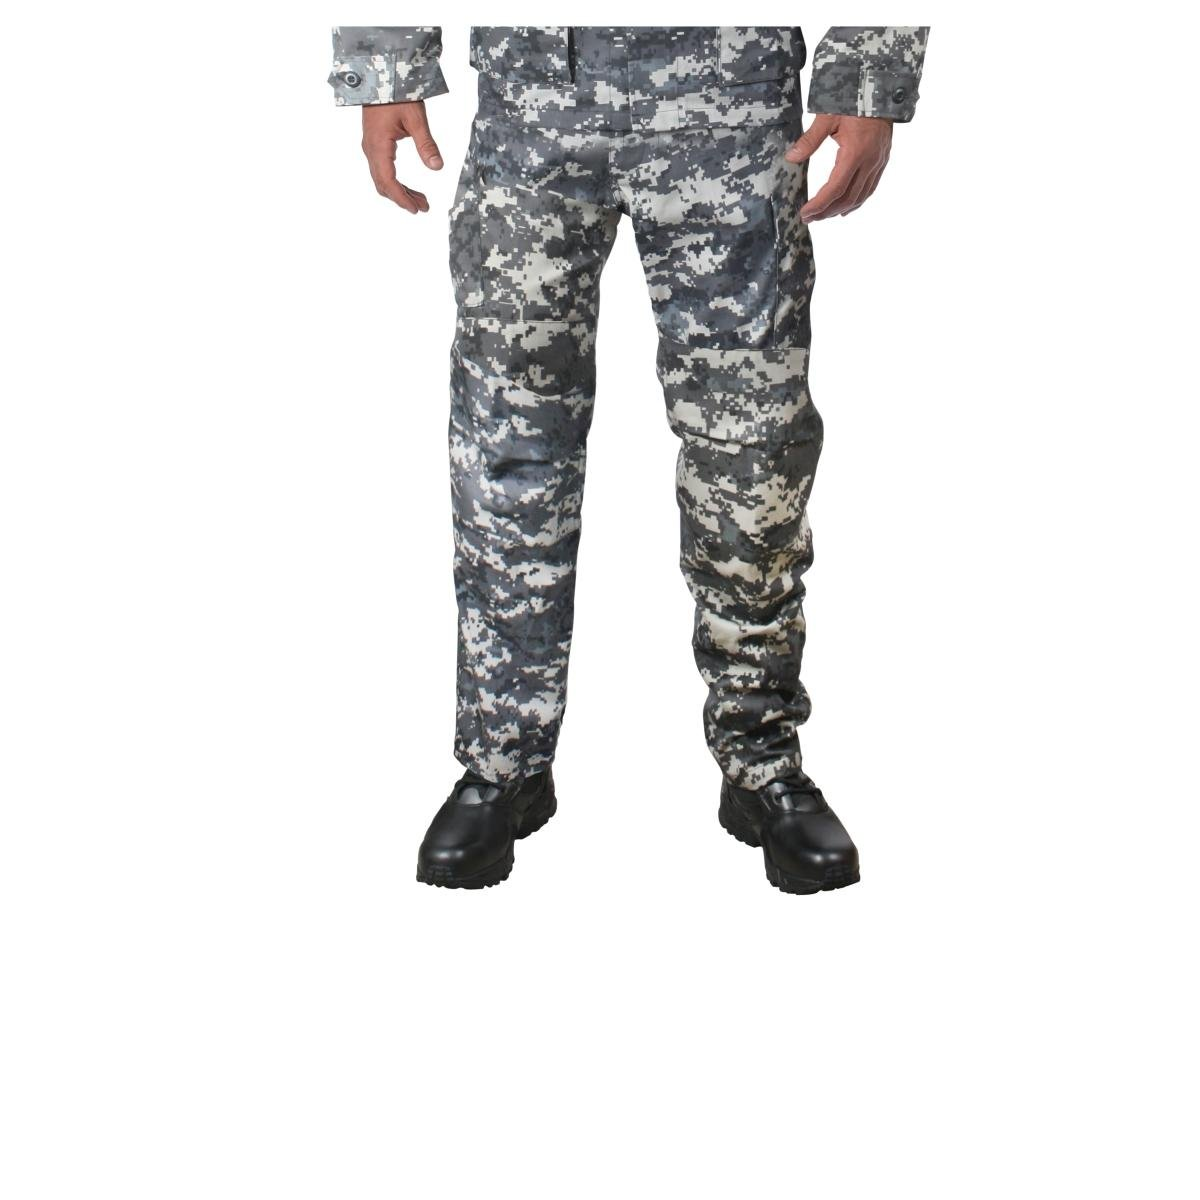 Subdued Urban Digital Camouflage Military BDU Fatigue Pants, Medium Long 9634MED